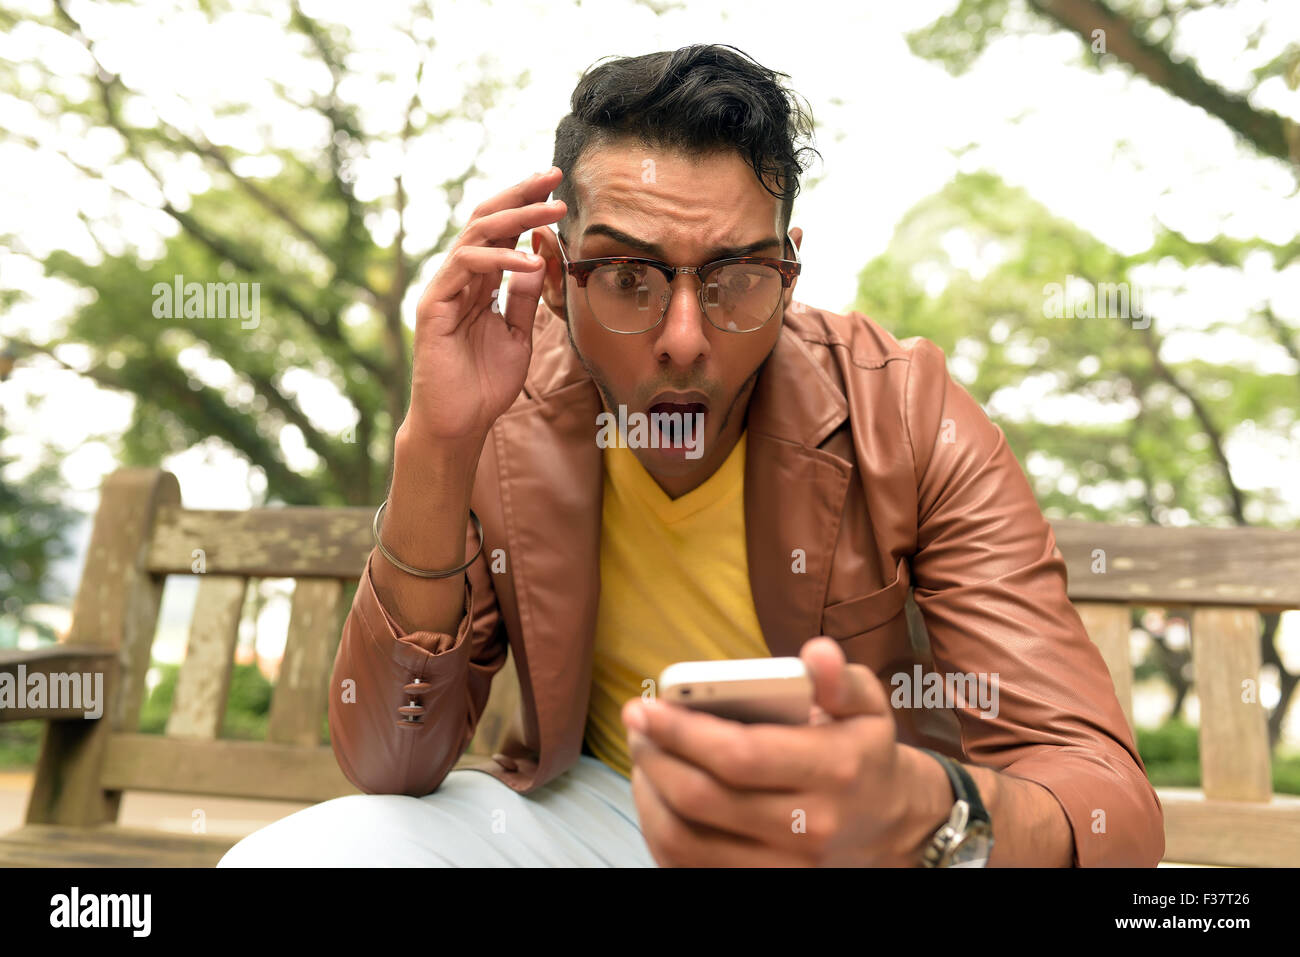 Asian , Man , Indian Ethnicities , Smart Phone , Casual Clothing , Outdoor . Stock Photo